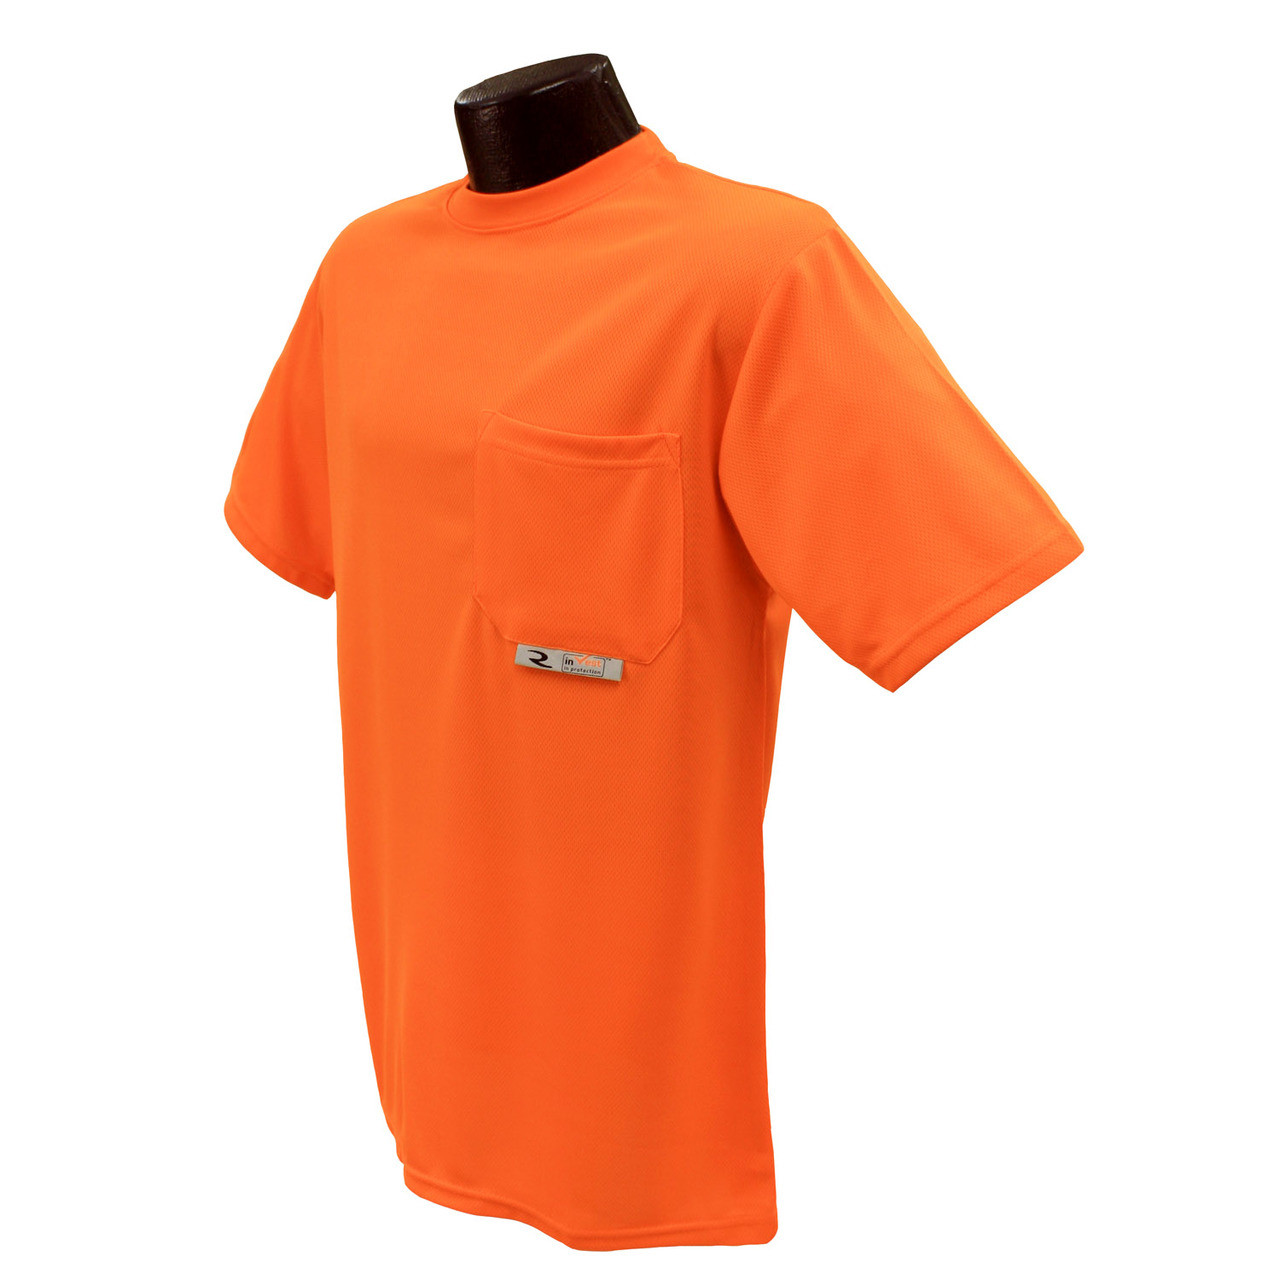 Hi-Vis Orange Non-Rated Short Sleeve T-Shirt with MAX-DRI™ *Custom Printing Available*